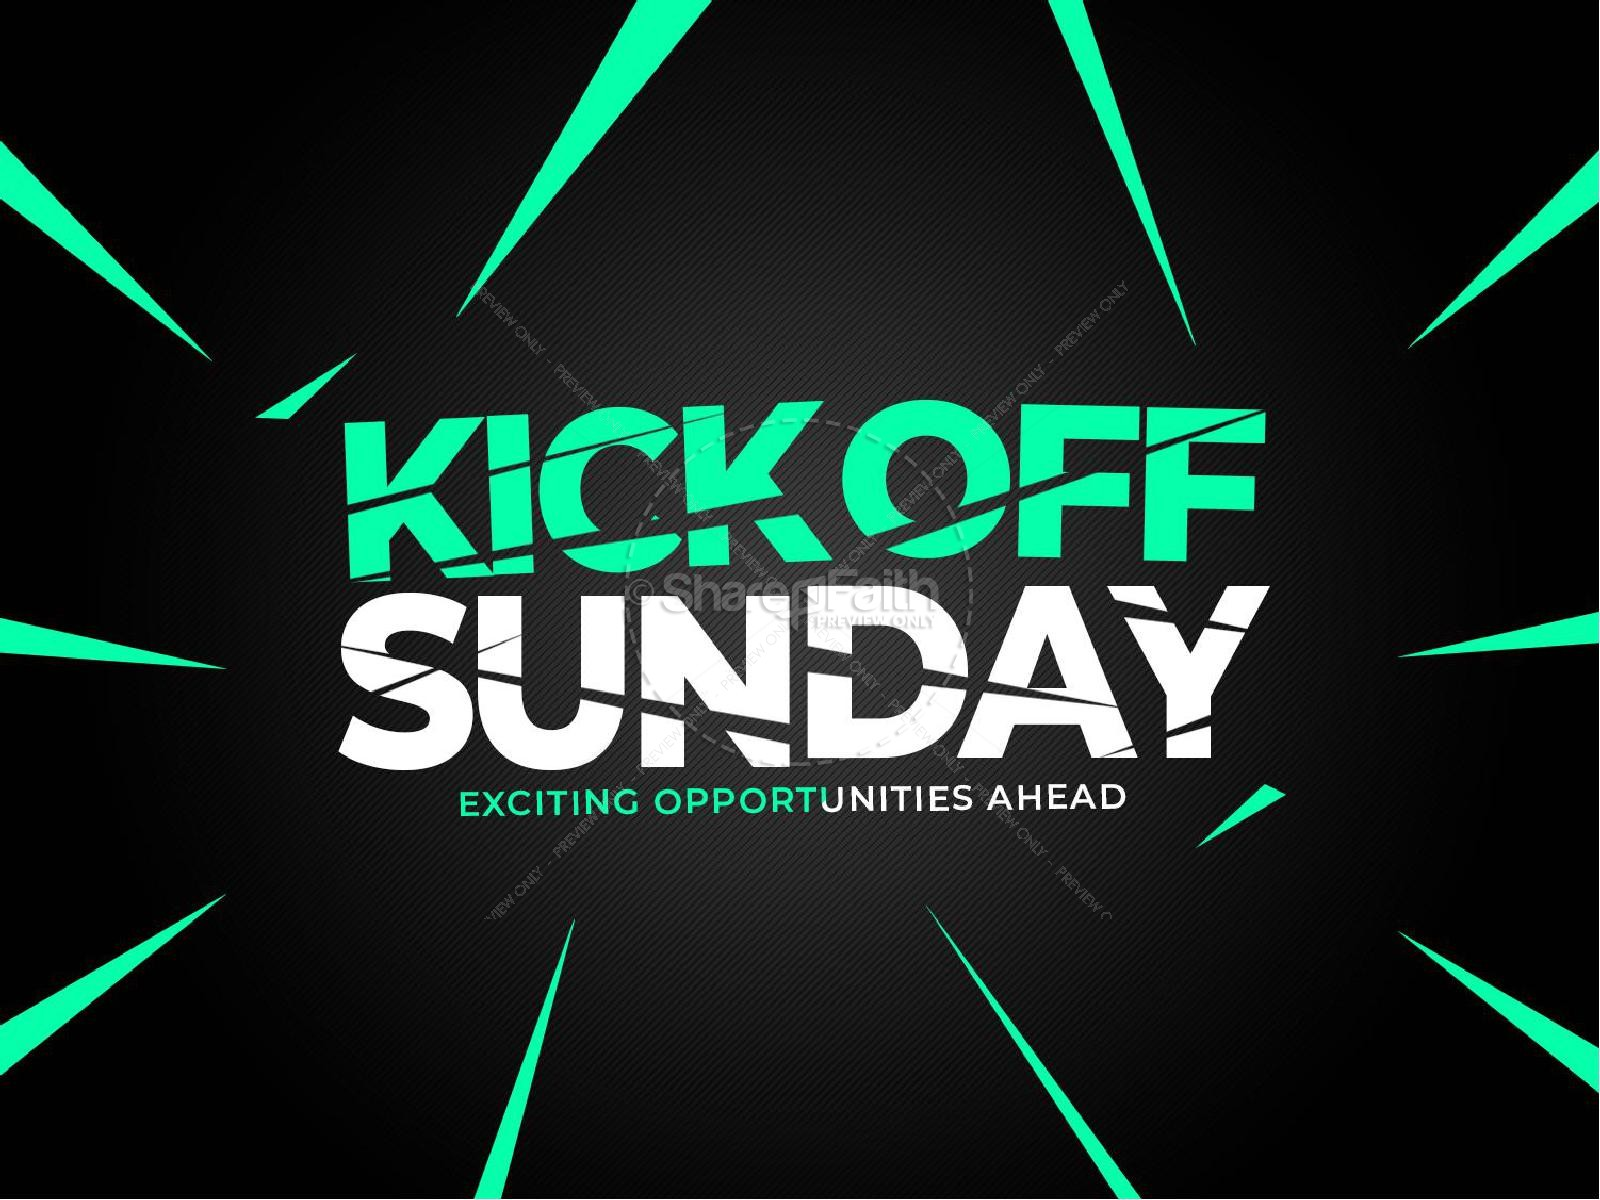 Kick Off Sunday Green Church PowerPoint